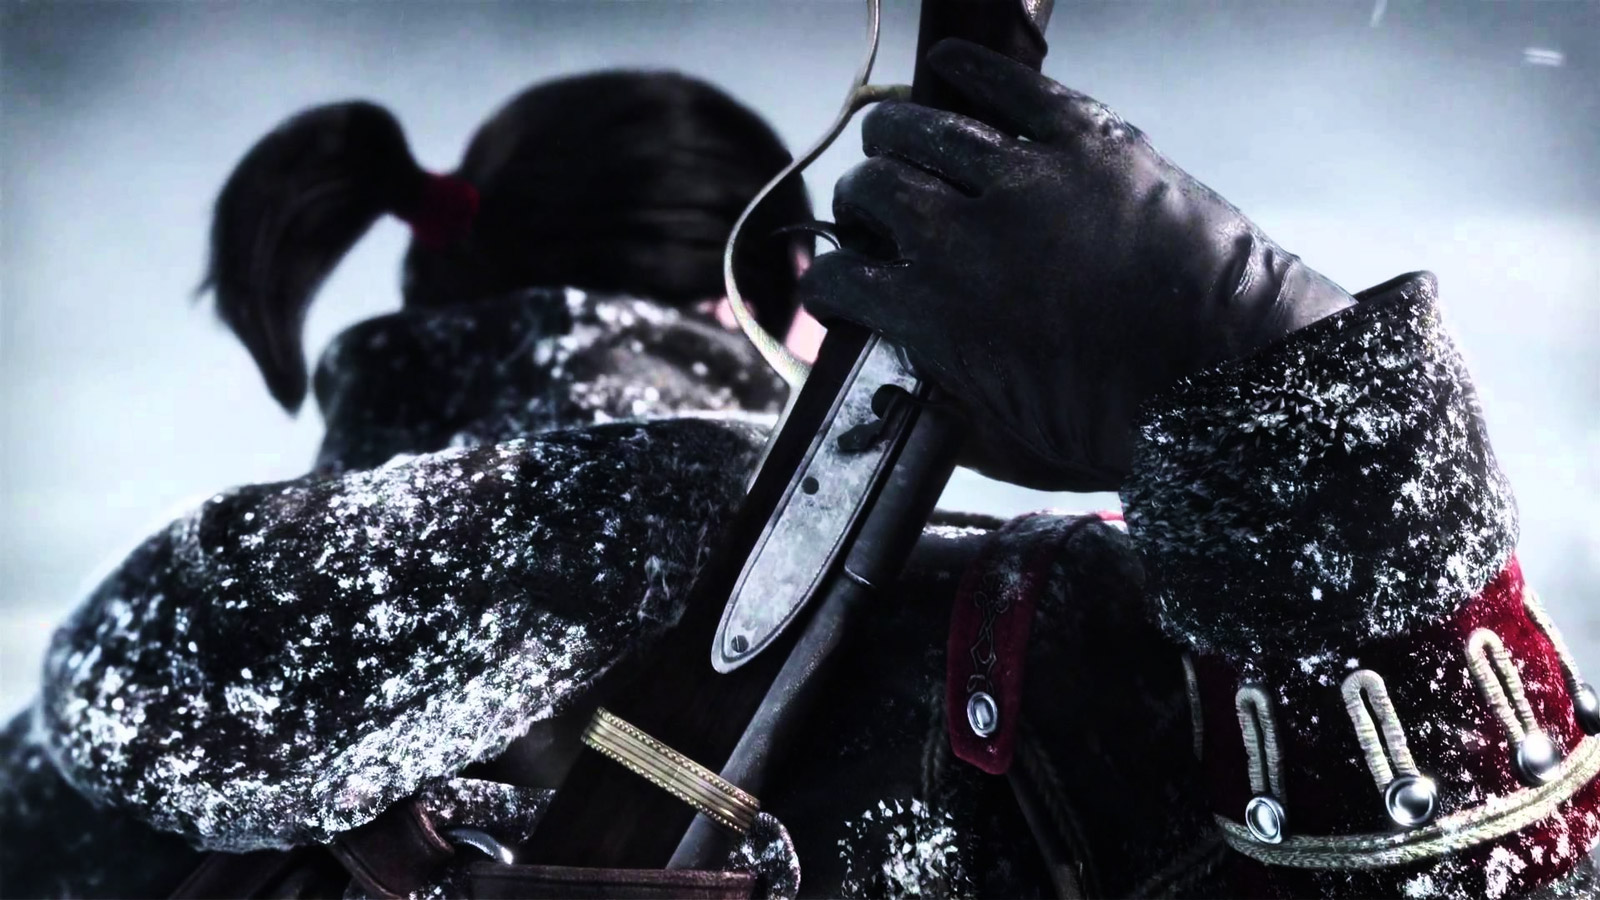 Free Assassin's Creed: Rogue Wallpaper in 1600x900